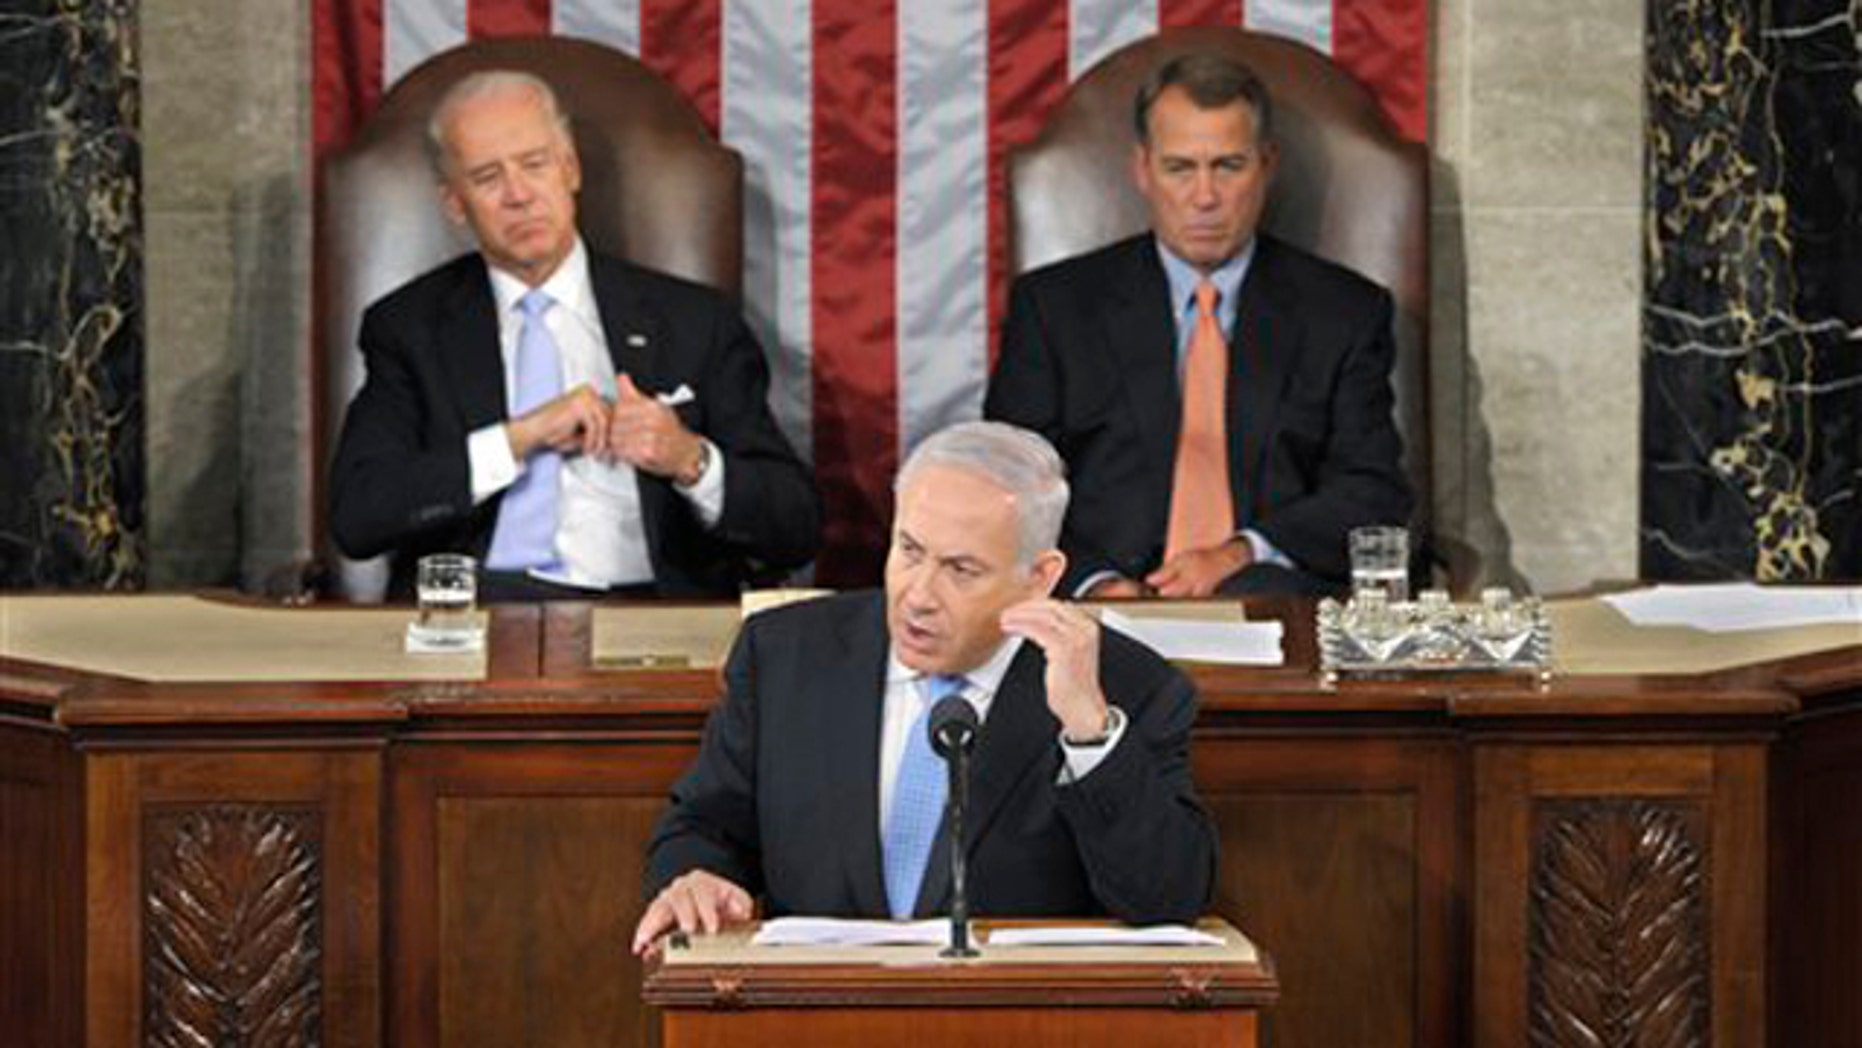 Israel's Prime Minister Benjamin Netanyahu gestures while addressing a joint meeting of Congress in Washington May 24. House Speaker John Boehner, right, and Vice President Joe Biden listen.